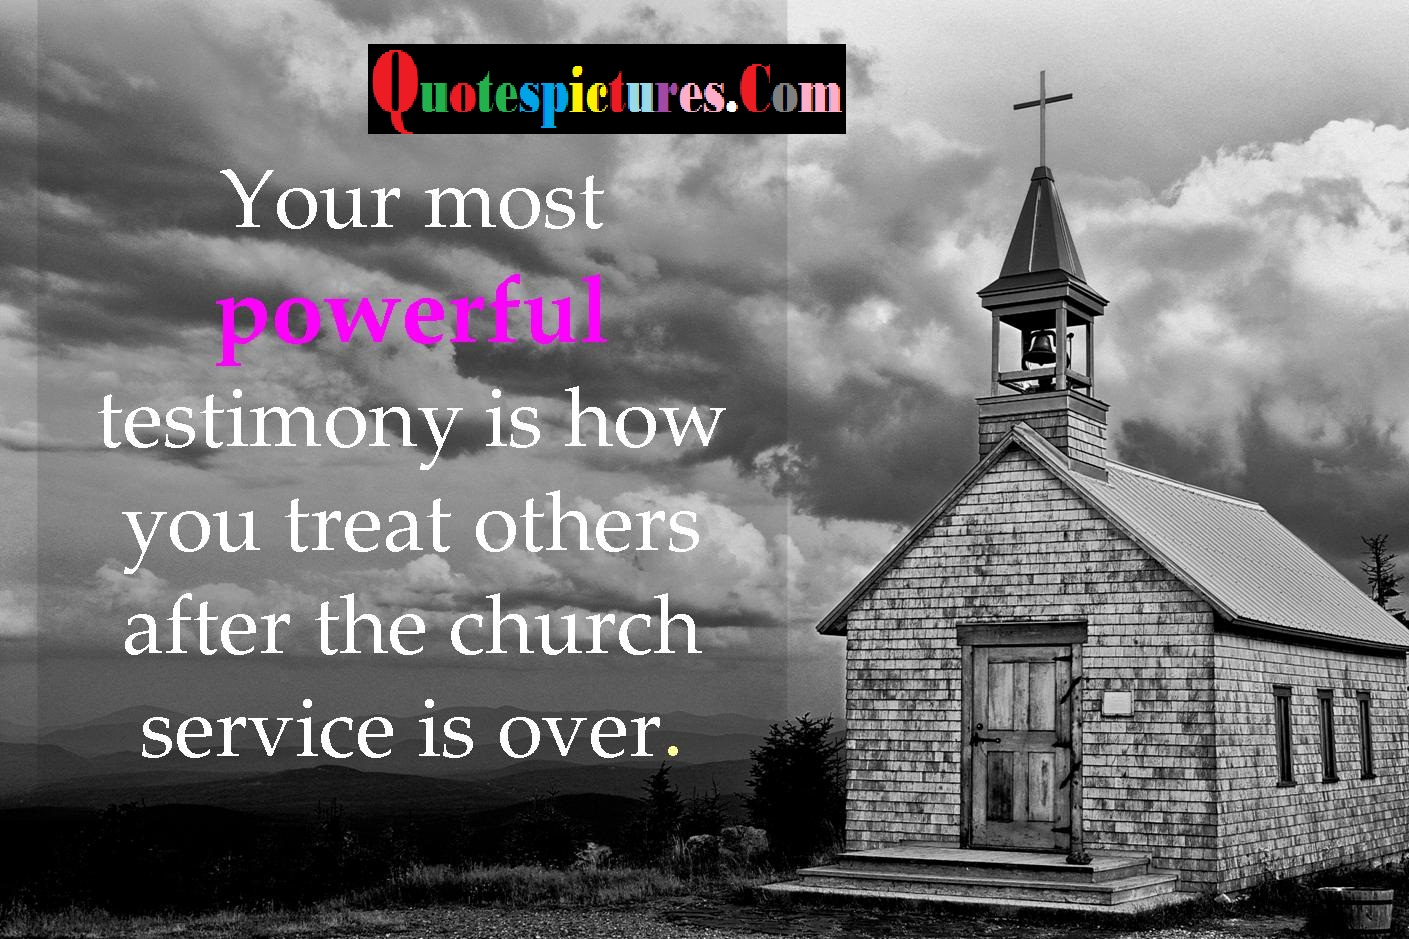 Church Quotes - Your Most Powerful Testimony Is How You Treat Others After The Church Service Is Over